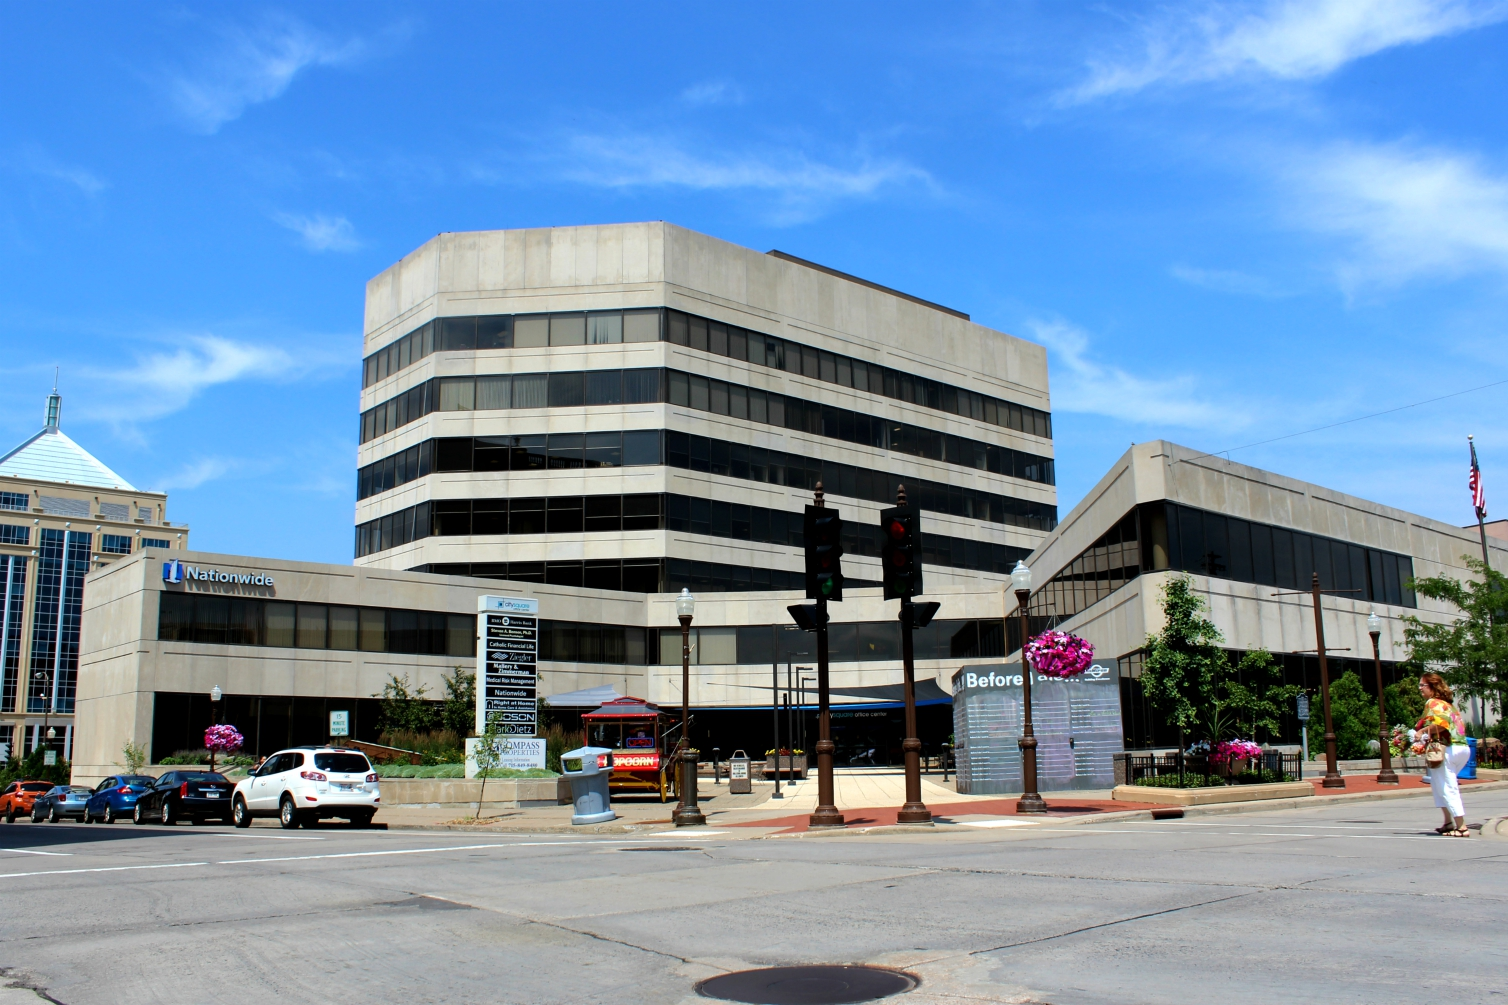 Bringing Back Brutalism: Wausau's CitySquare  Represents Resurgent Architectural Style